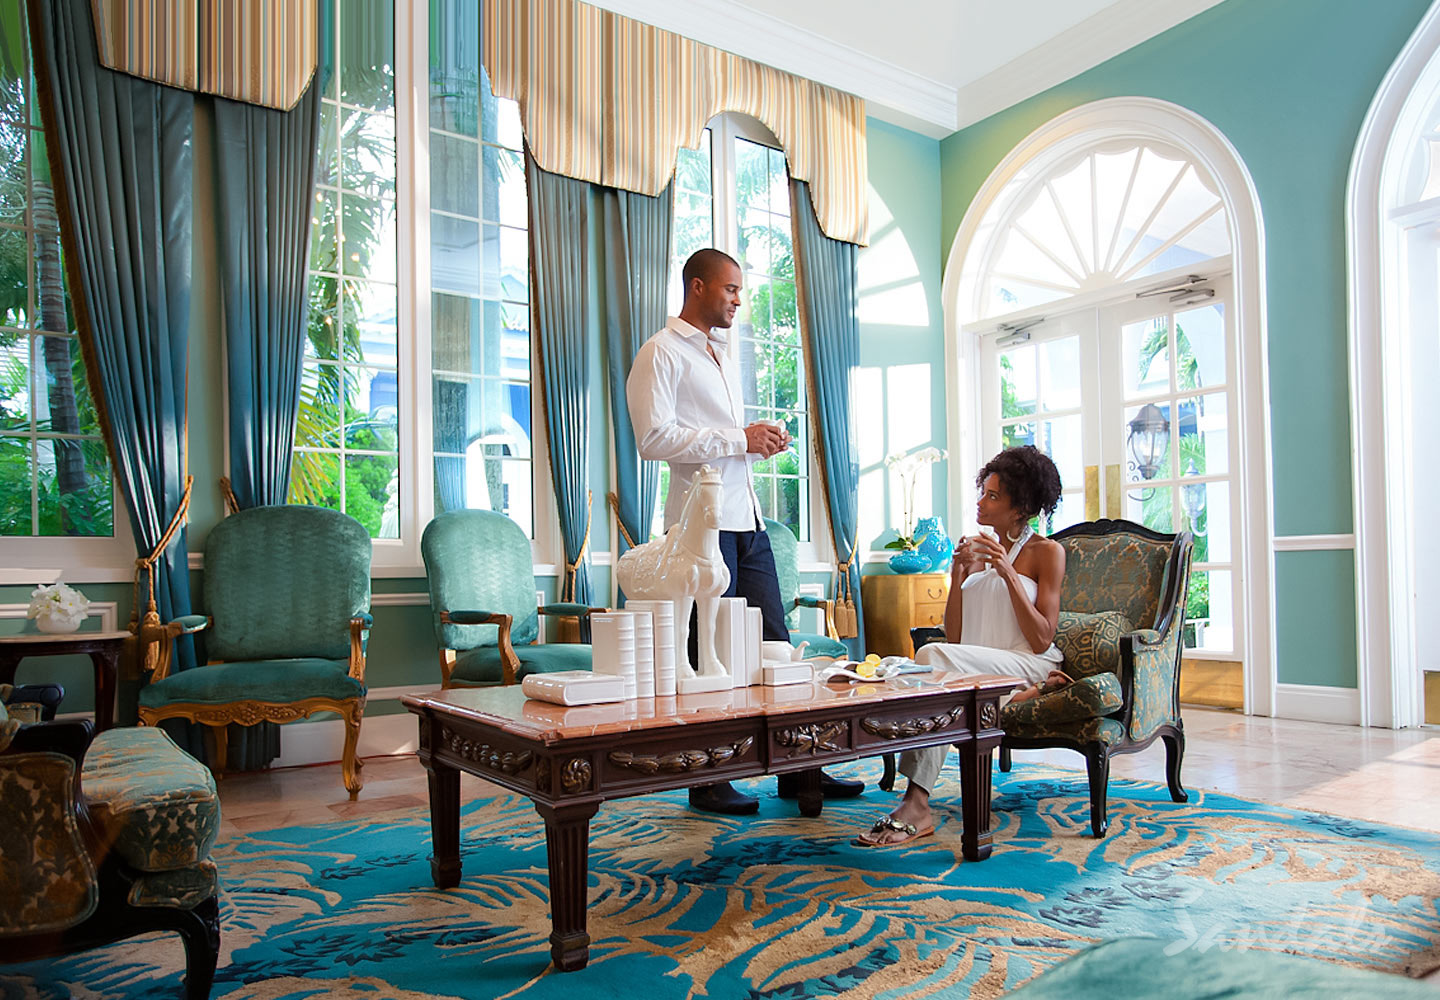 Travel Agency All-Inclusive Resort Sandals Royal Bahamian 006